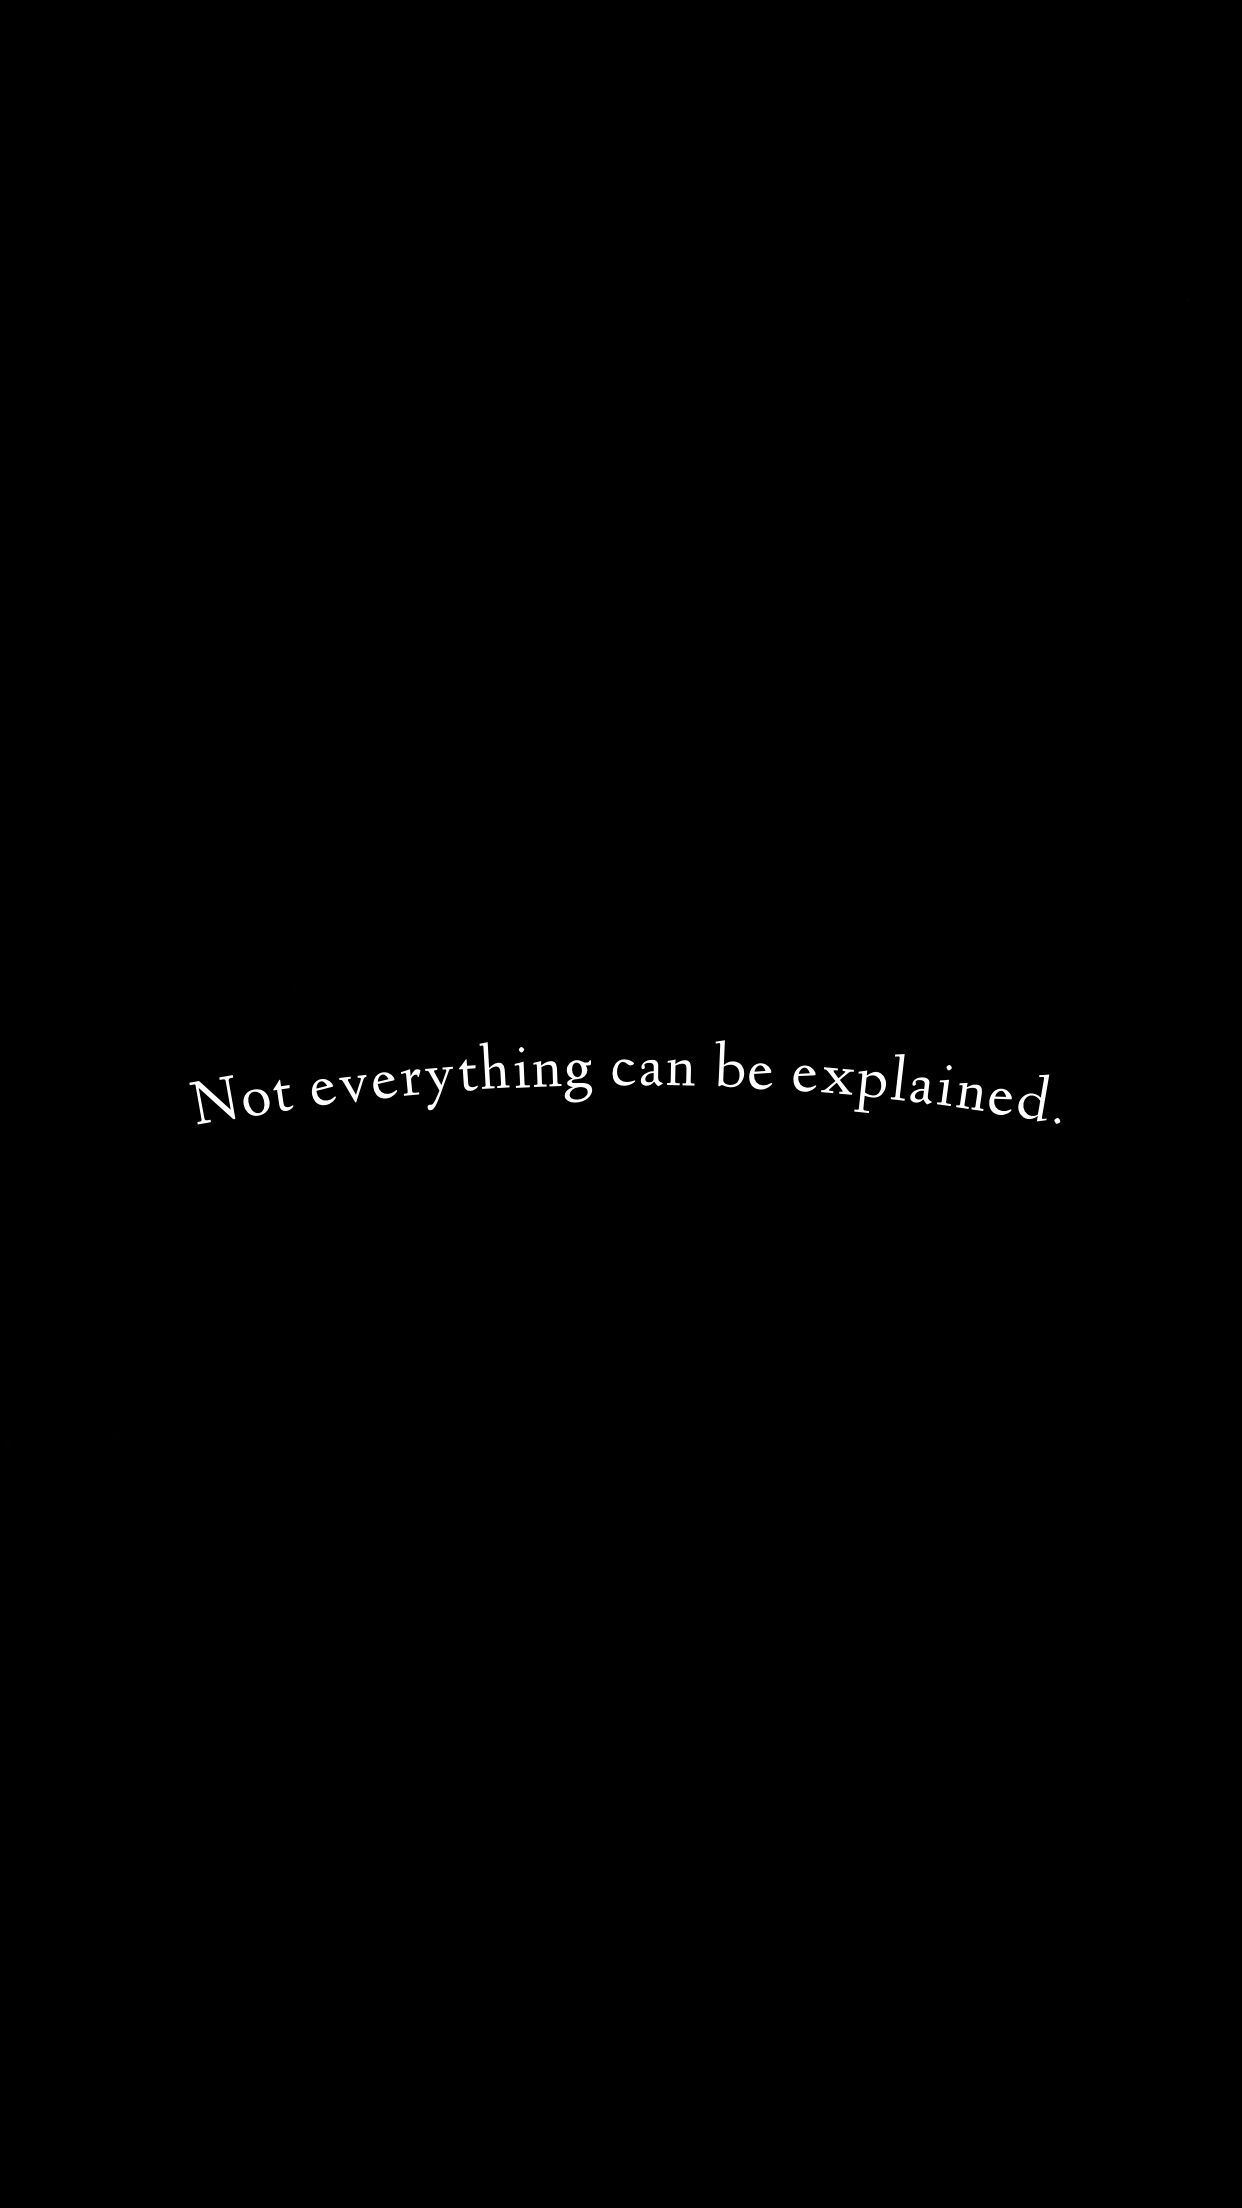 black background  Black quotes wallpaper, Black background quotes